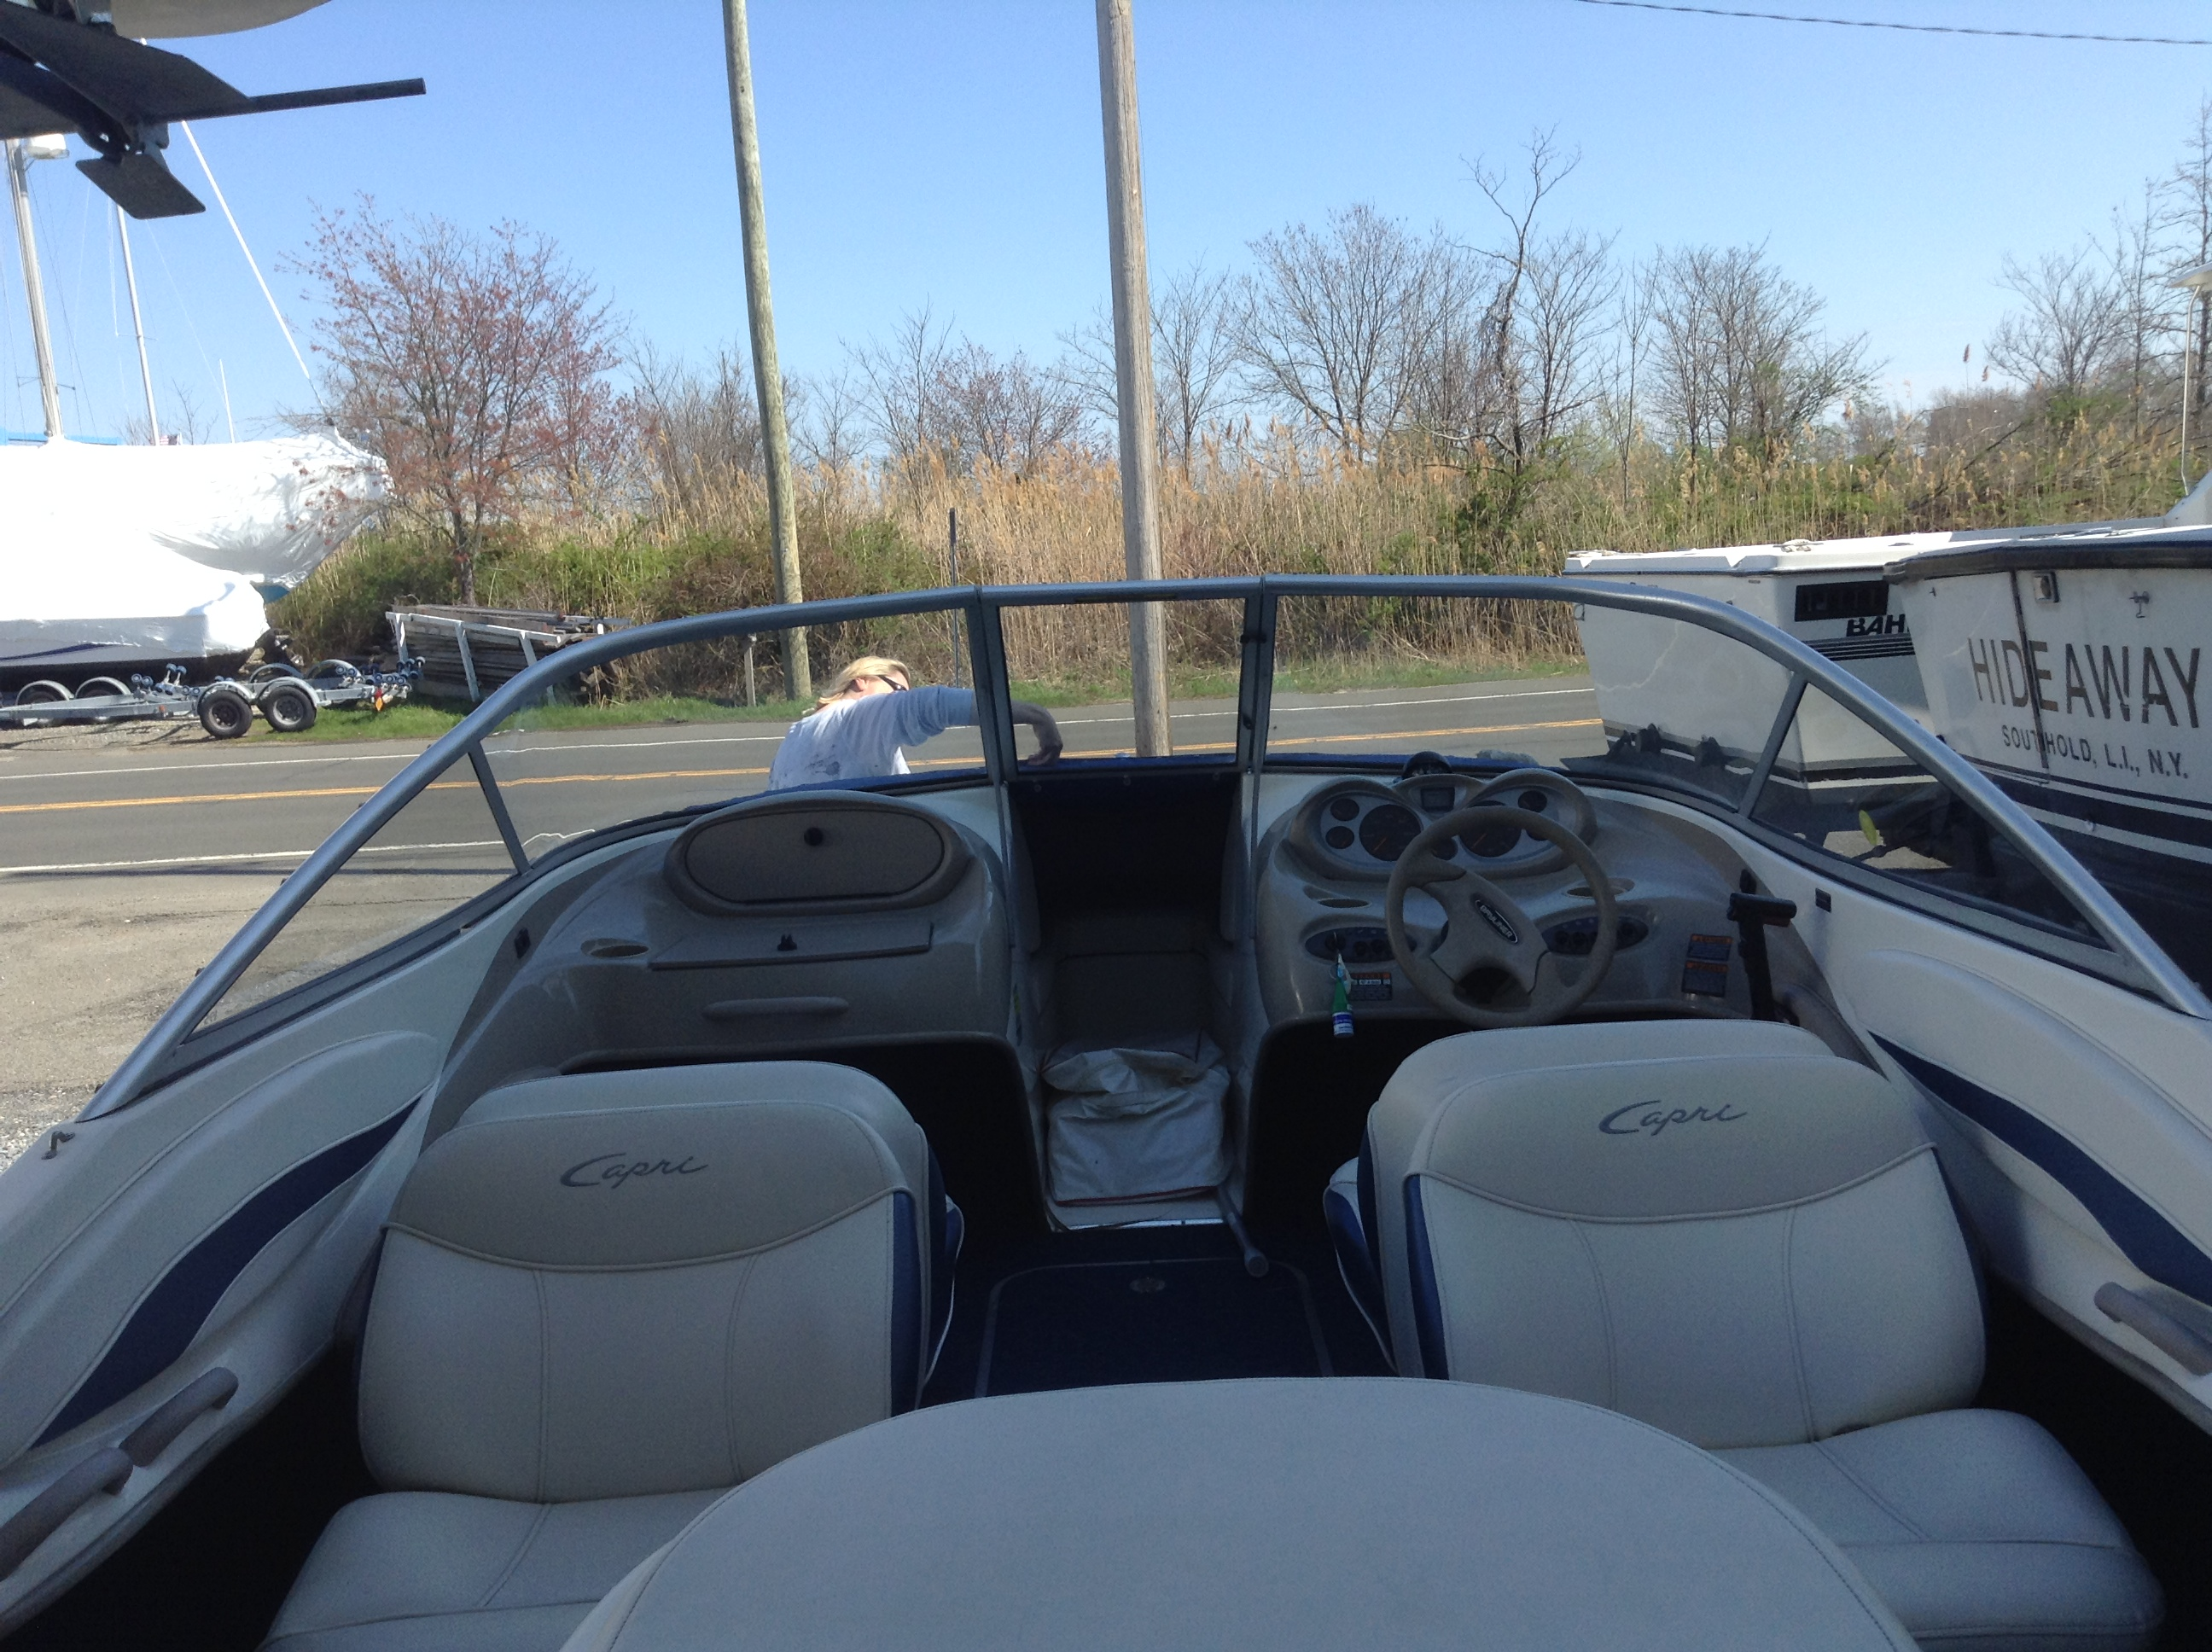 I have a 2001 Bayliner 1950 (BT) Capri with a 4 3 Mercruiser